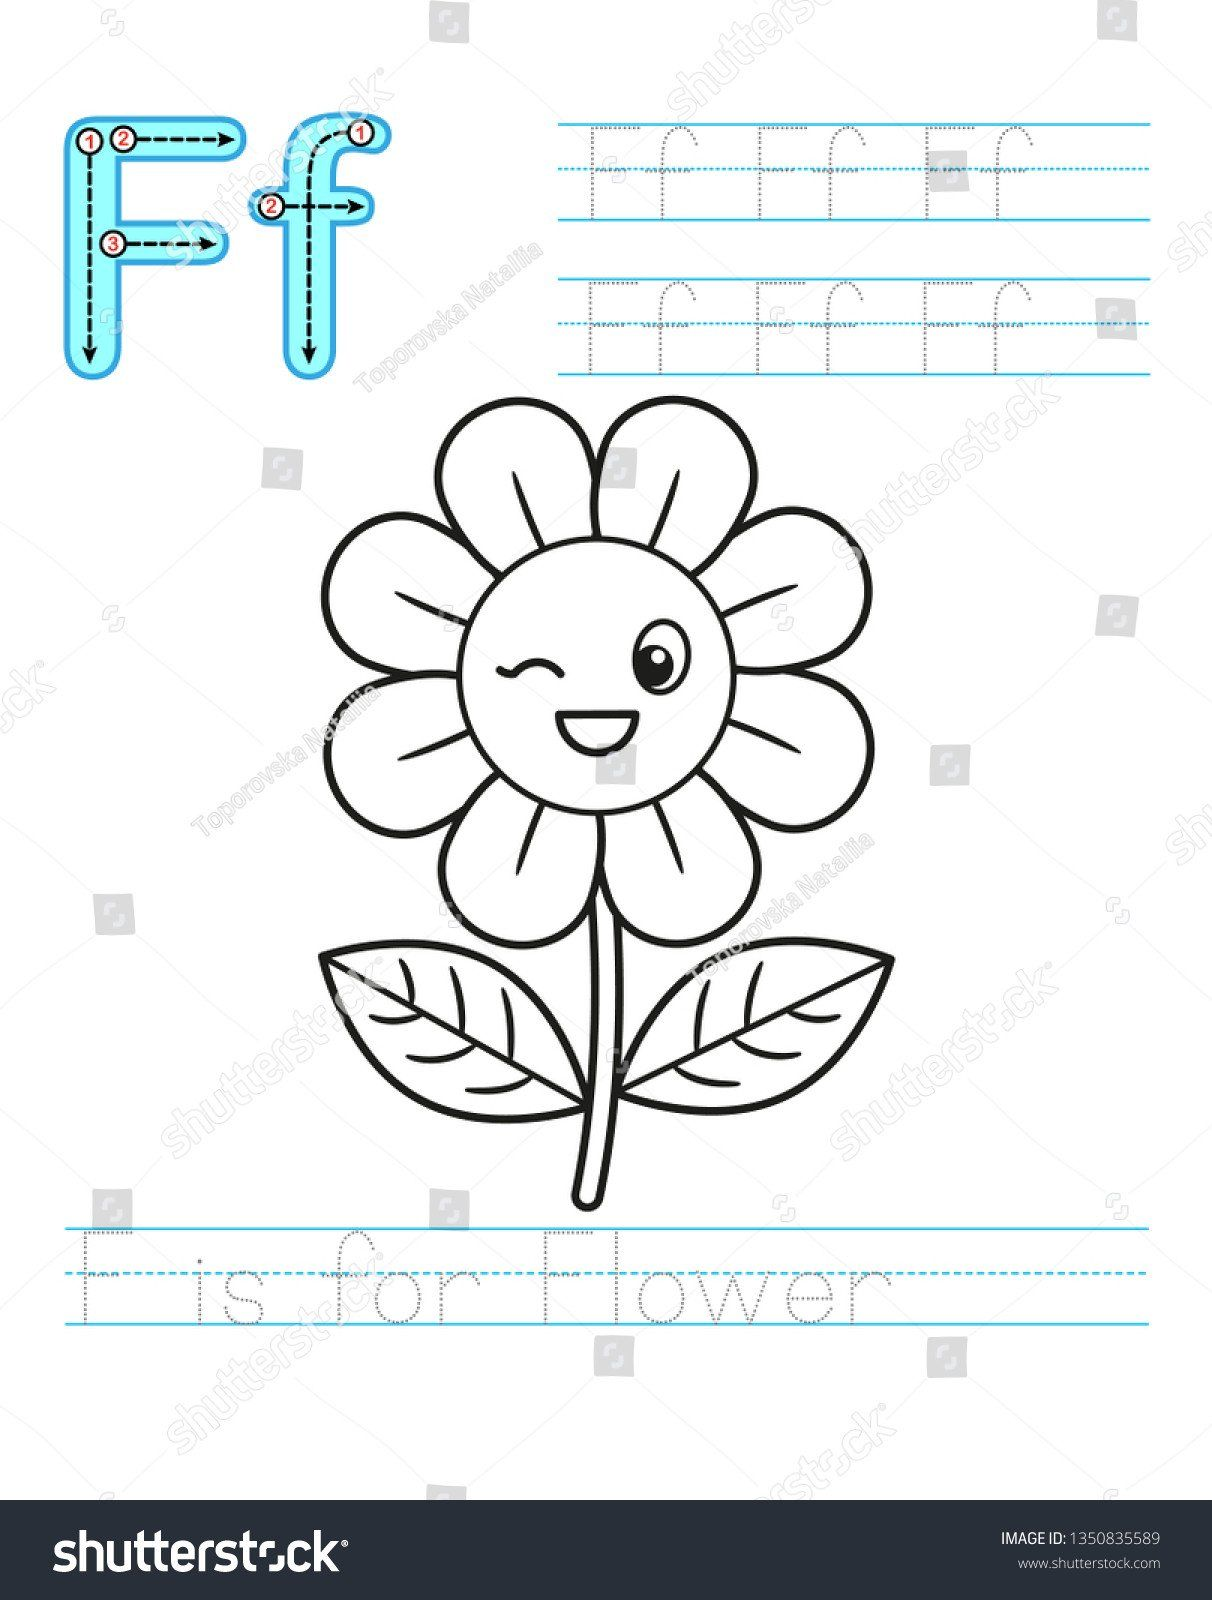 Texture Worksheet For Kindergarten Coloring Book Page